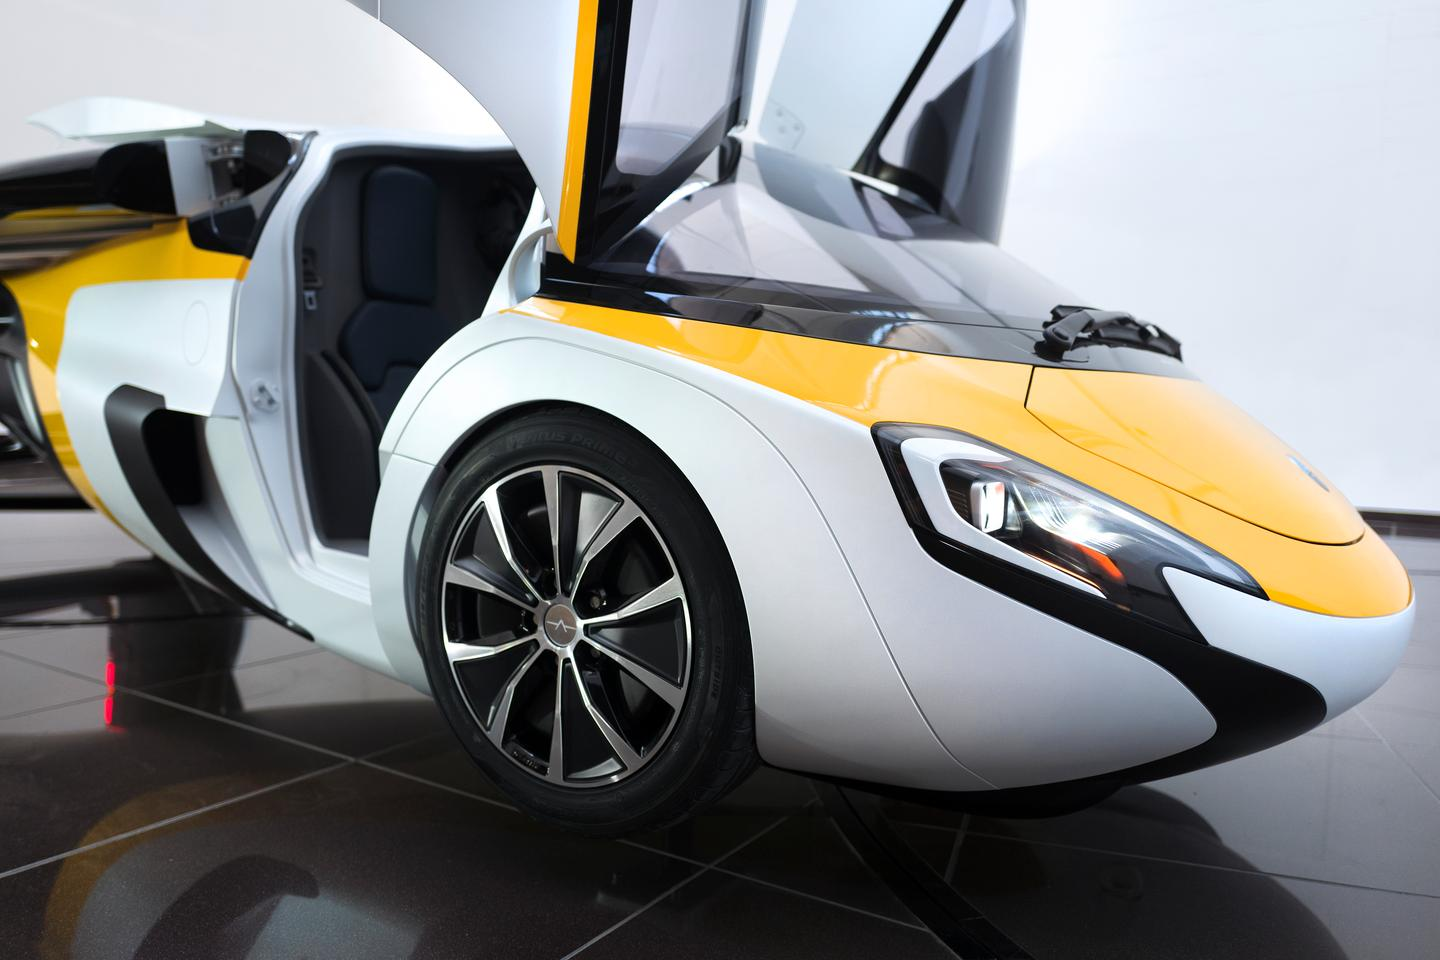 The AeroMobil Flying Car's doors open upward, so you know it's expensive